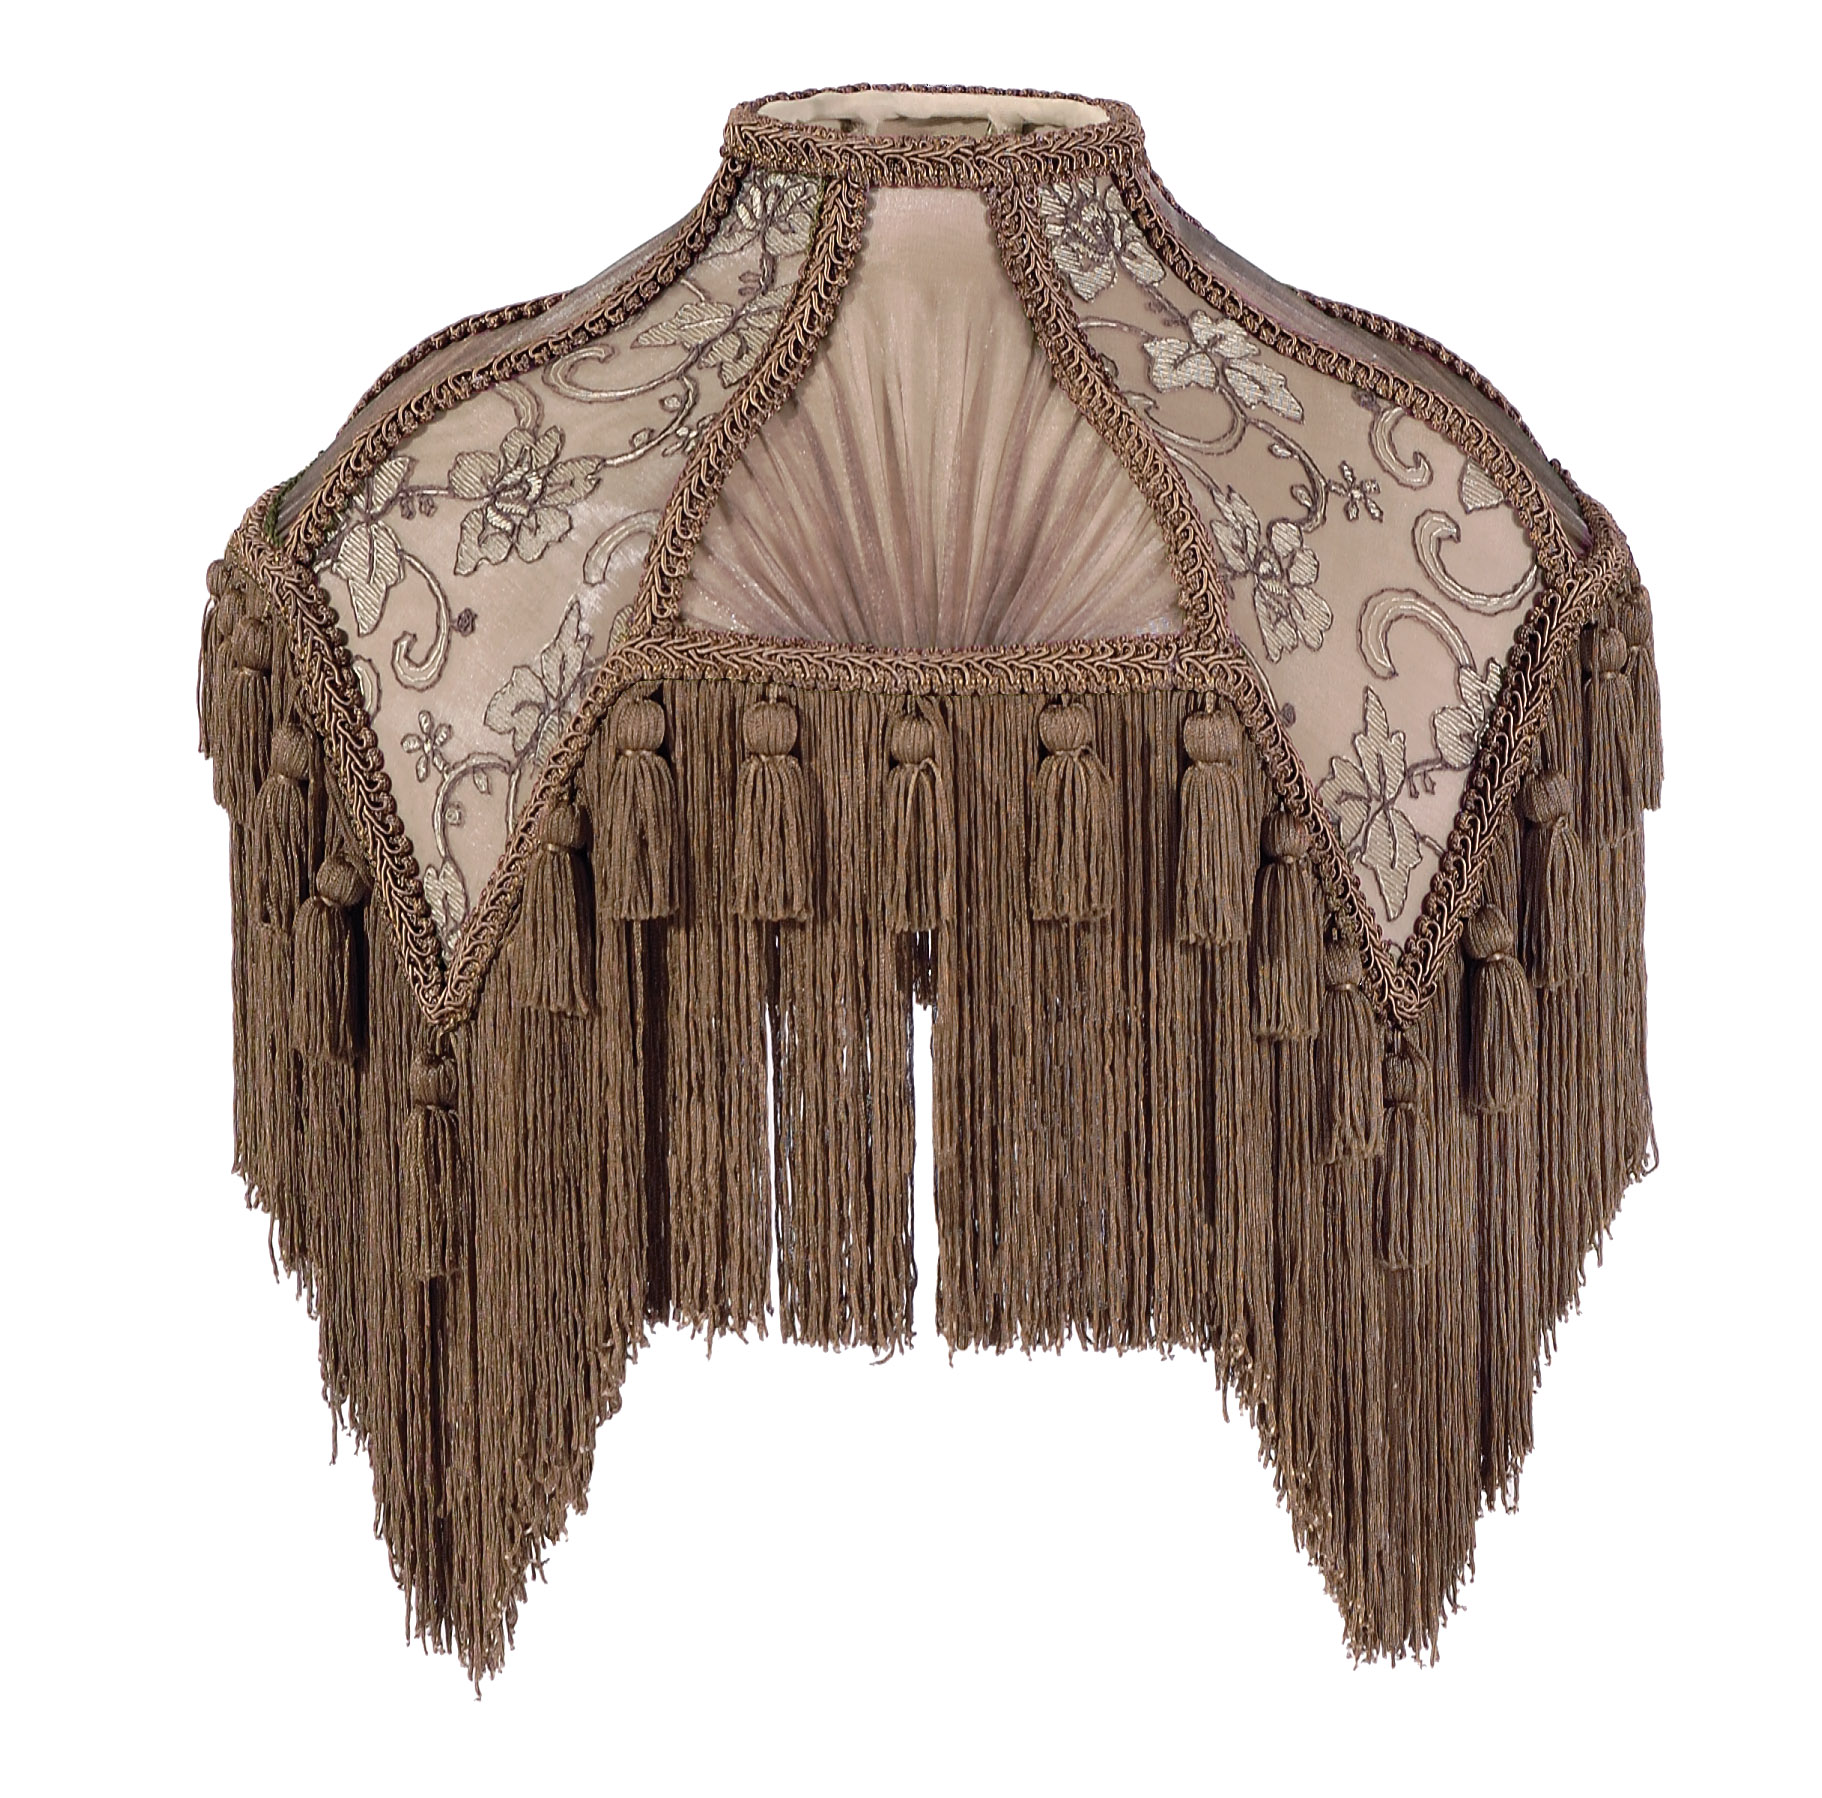 Mocha Bridge Uno Victorian Fringed Lamp Shades 05797a B